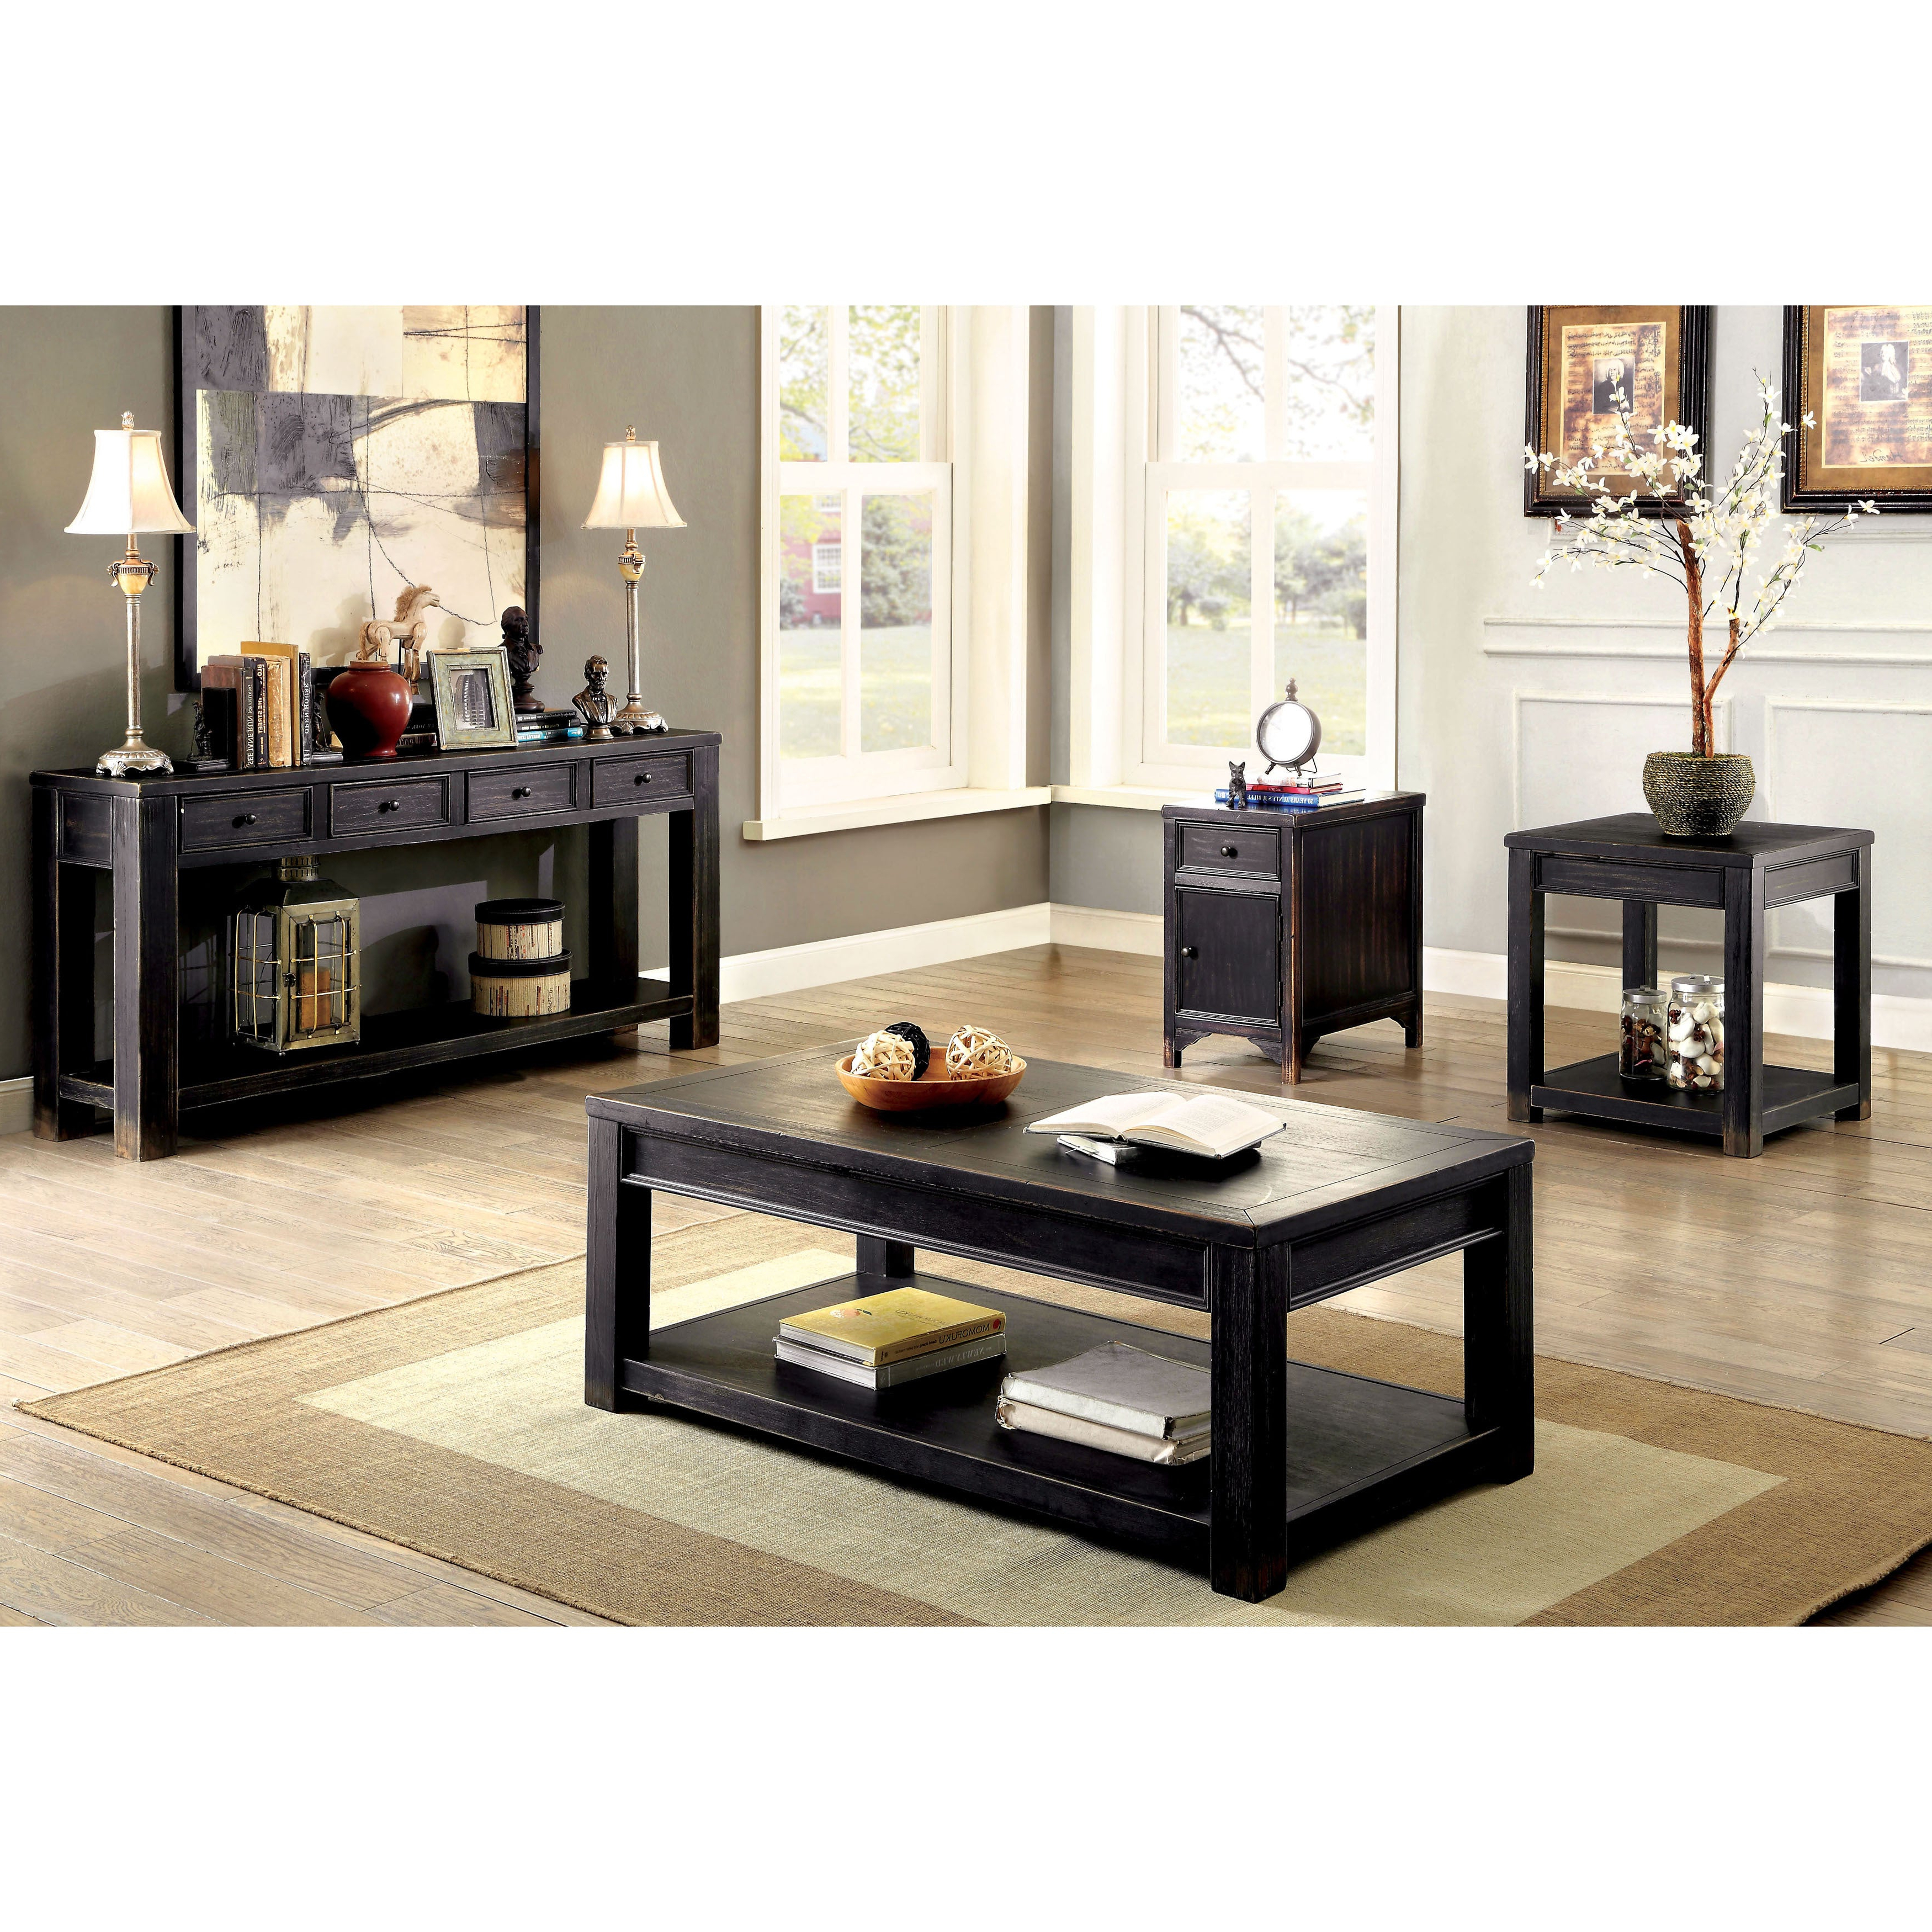 Cosbin Rustic Bold Antique Black Coffee Tablefoa Within Fashionable Cosbin Rustic Bold Antique Black Coffee Tables (View 7 of 20)